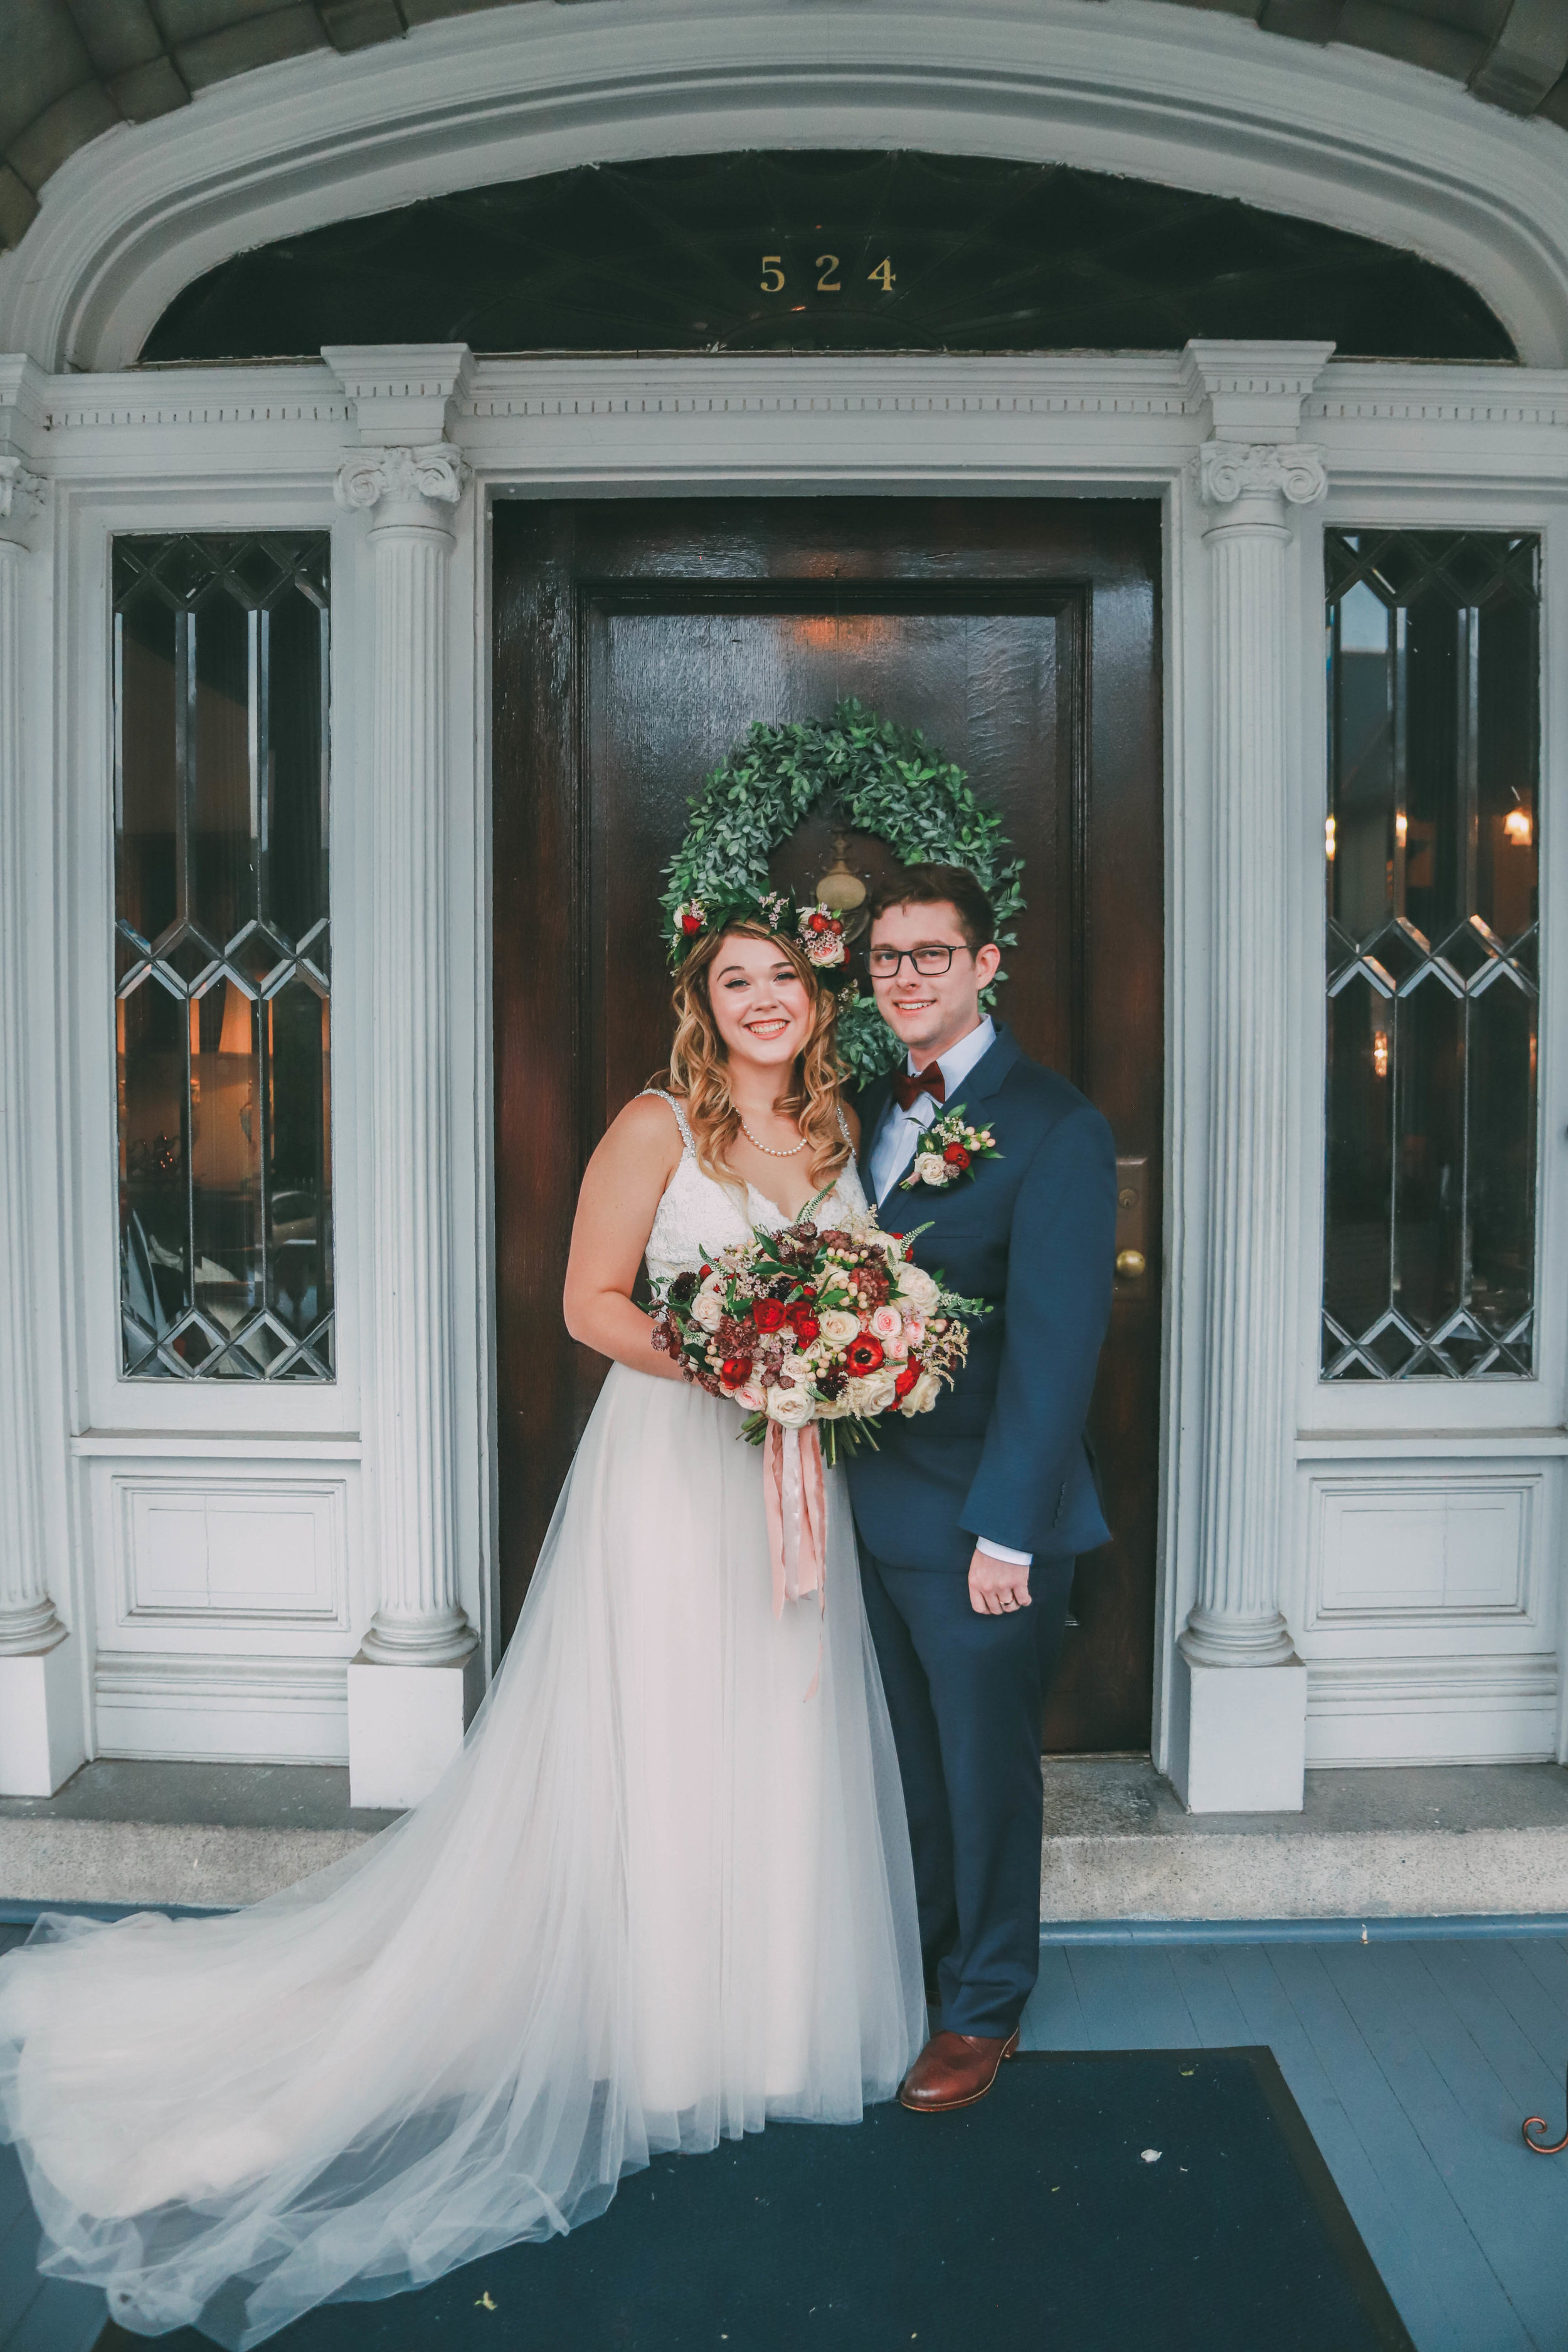 Bridgette+Jacob-201.jpg